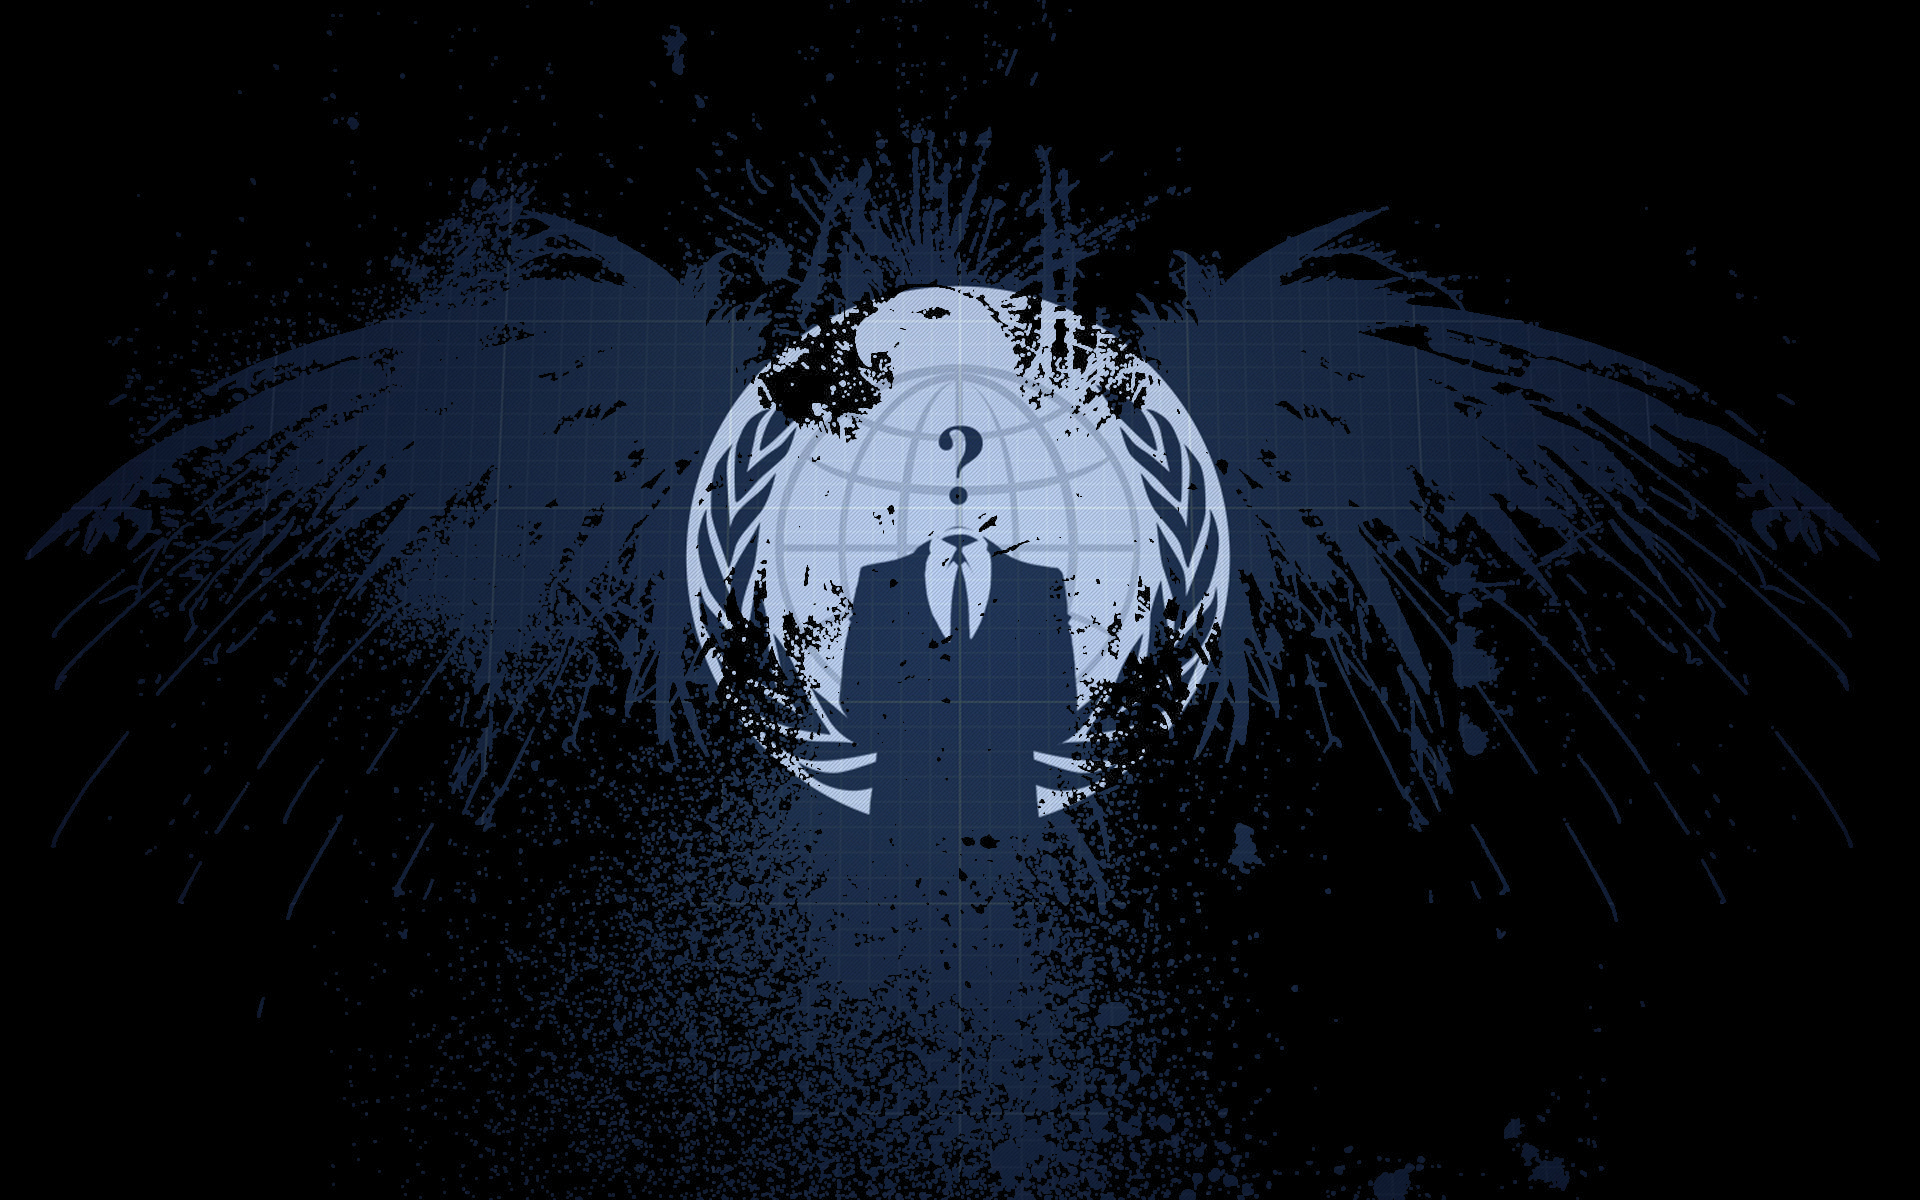 anonymous wallpapers wallpaper images 1920x1200 1920x1200